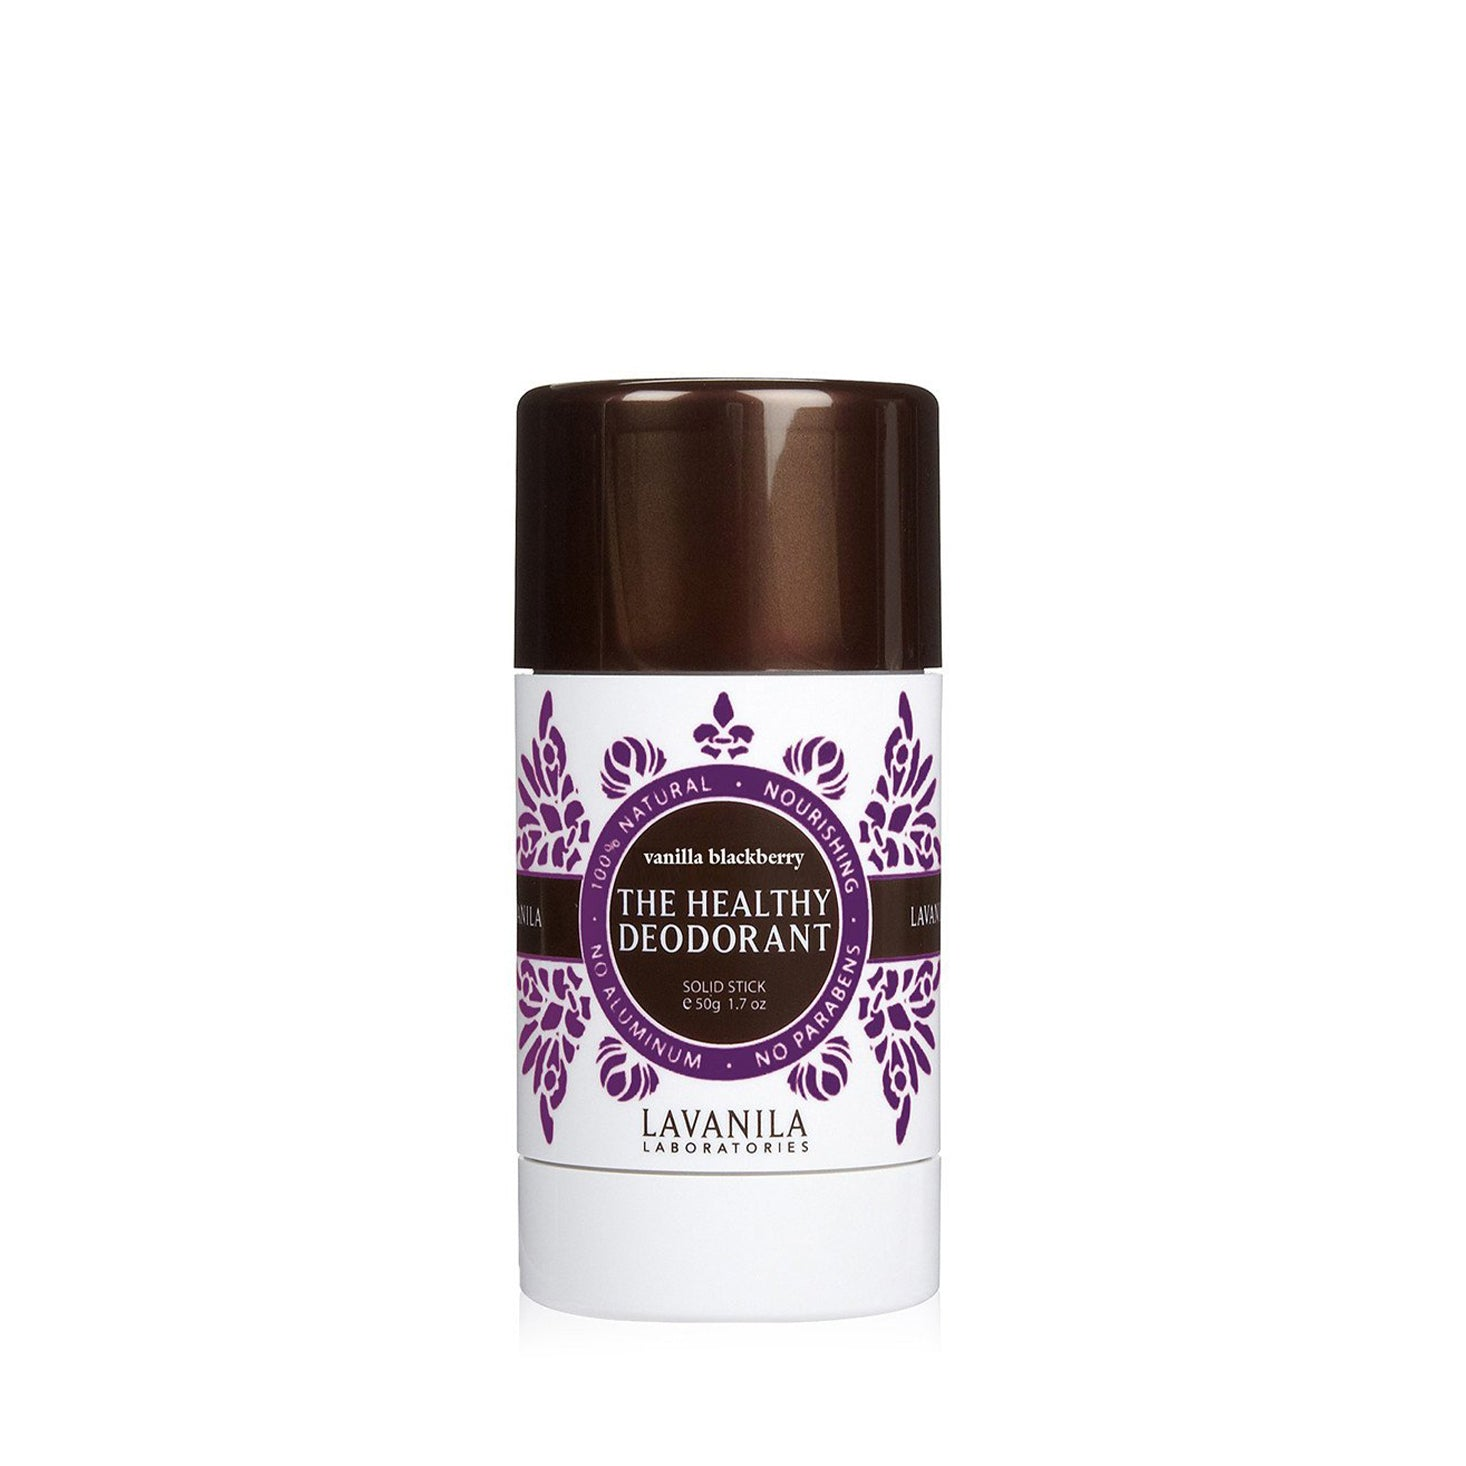 Lavanila Vanilla Blackberry Mini Deodorant